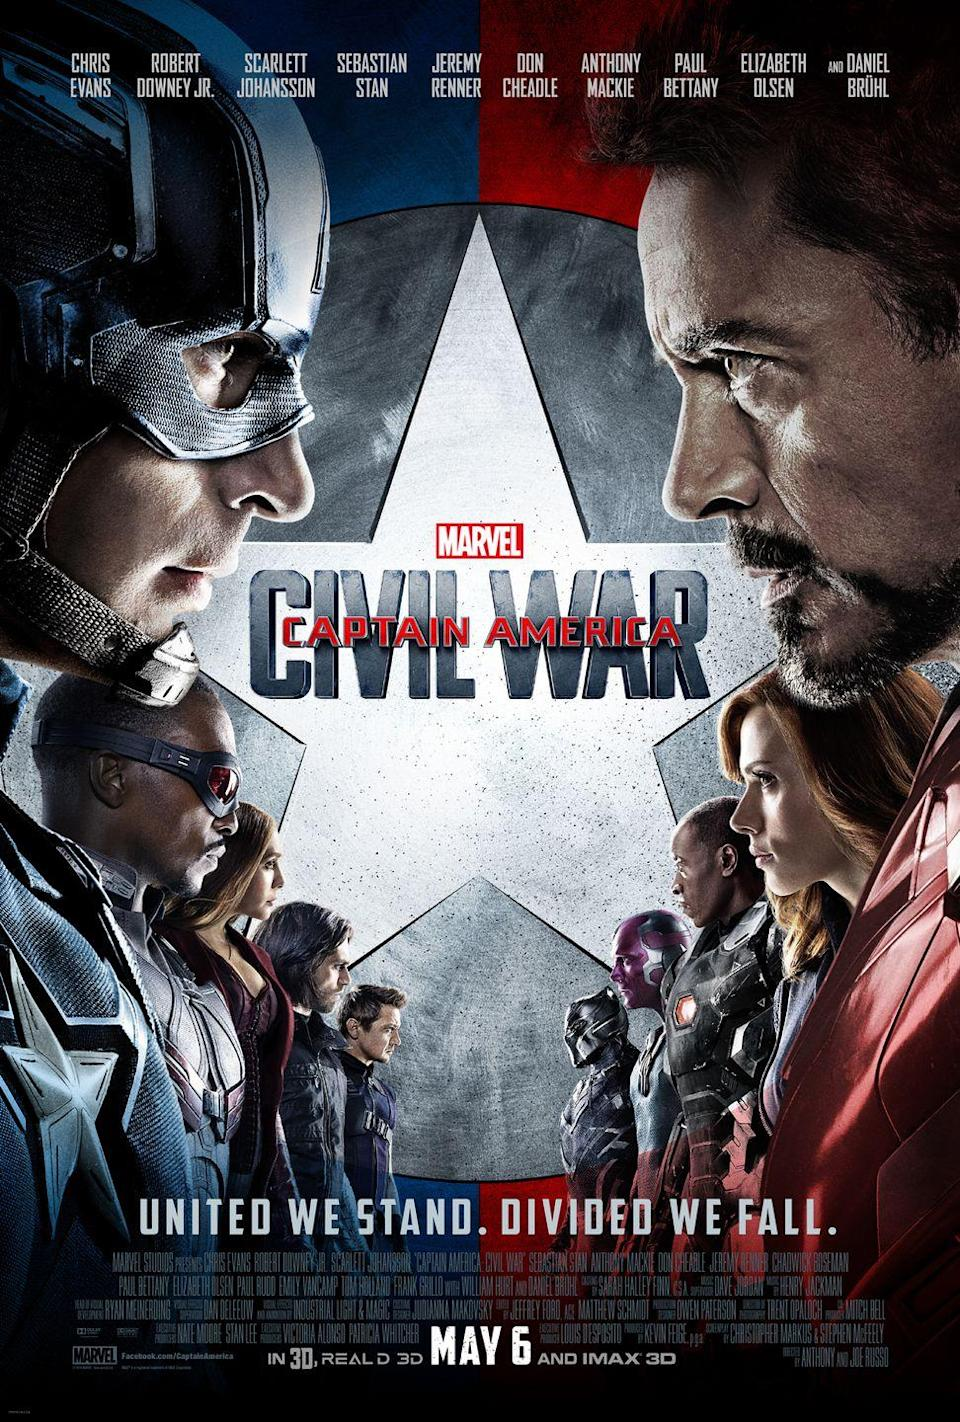 """<p>In the third Captain America movie, it's heroes vs. heroes. The government has decided to push for a hero registration act, and while Iron Man and several of the other heroes are in favor, Captain America and his team don't agree. No matter who you side with, it's a fun, action-packed movie. </p><p><a class=""""link rapid-noclick-resp"""" href=""""https://go.redirectingat.com?id=74968X1596630&url=https%3A%2F%2Fwww.disneyplus.com%2Fmovies%2Fmarvel-studios-captain-america-civil-war%2F4ovfyKnnIBCg&sref=https%3A%2F%2Fwww.womansday.com%2Flife%2Fentertainment%2Fg36156094%2F4th-of-july-movies%2F"""" rel=""""nofollow noopener"""" target=""""_blank"""" data-ylk=""""slk:STREAM NOW"""">STREAM NOW</a><br></p>"""